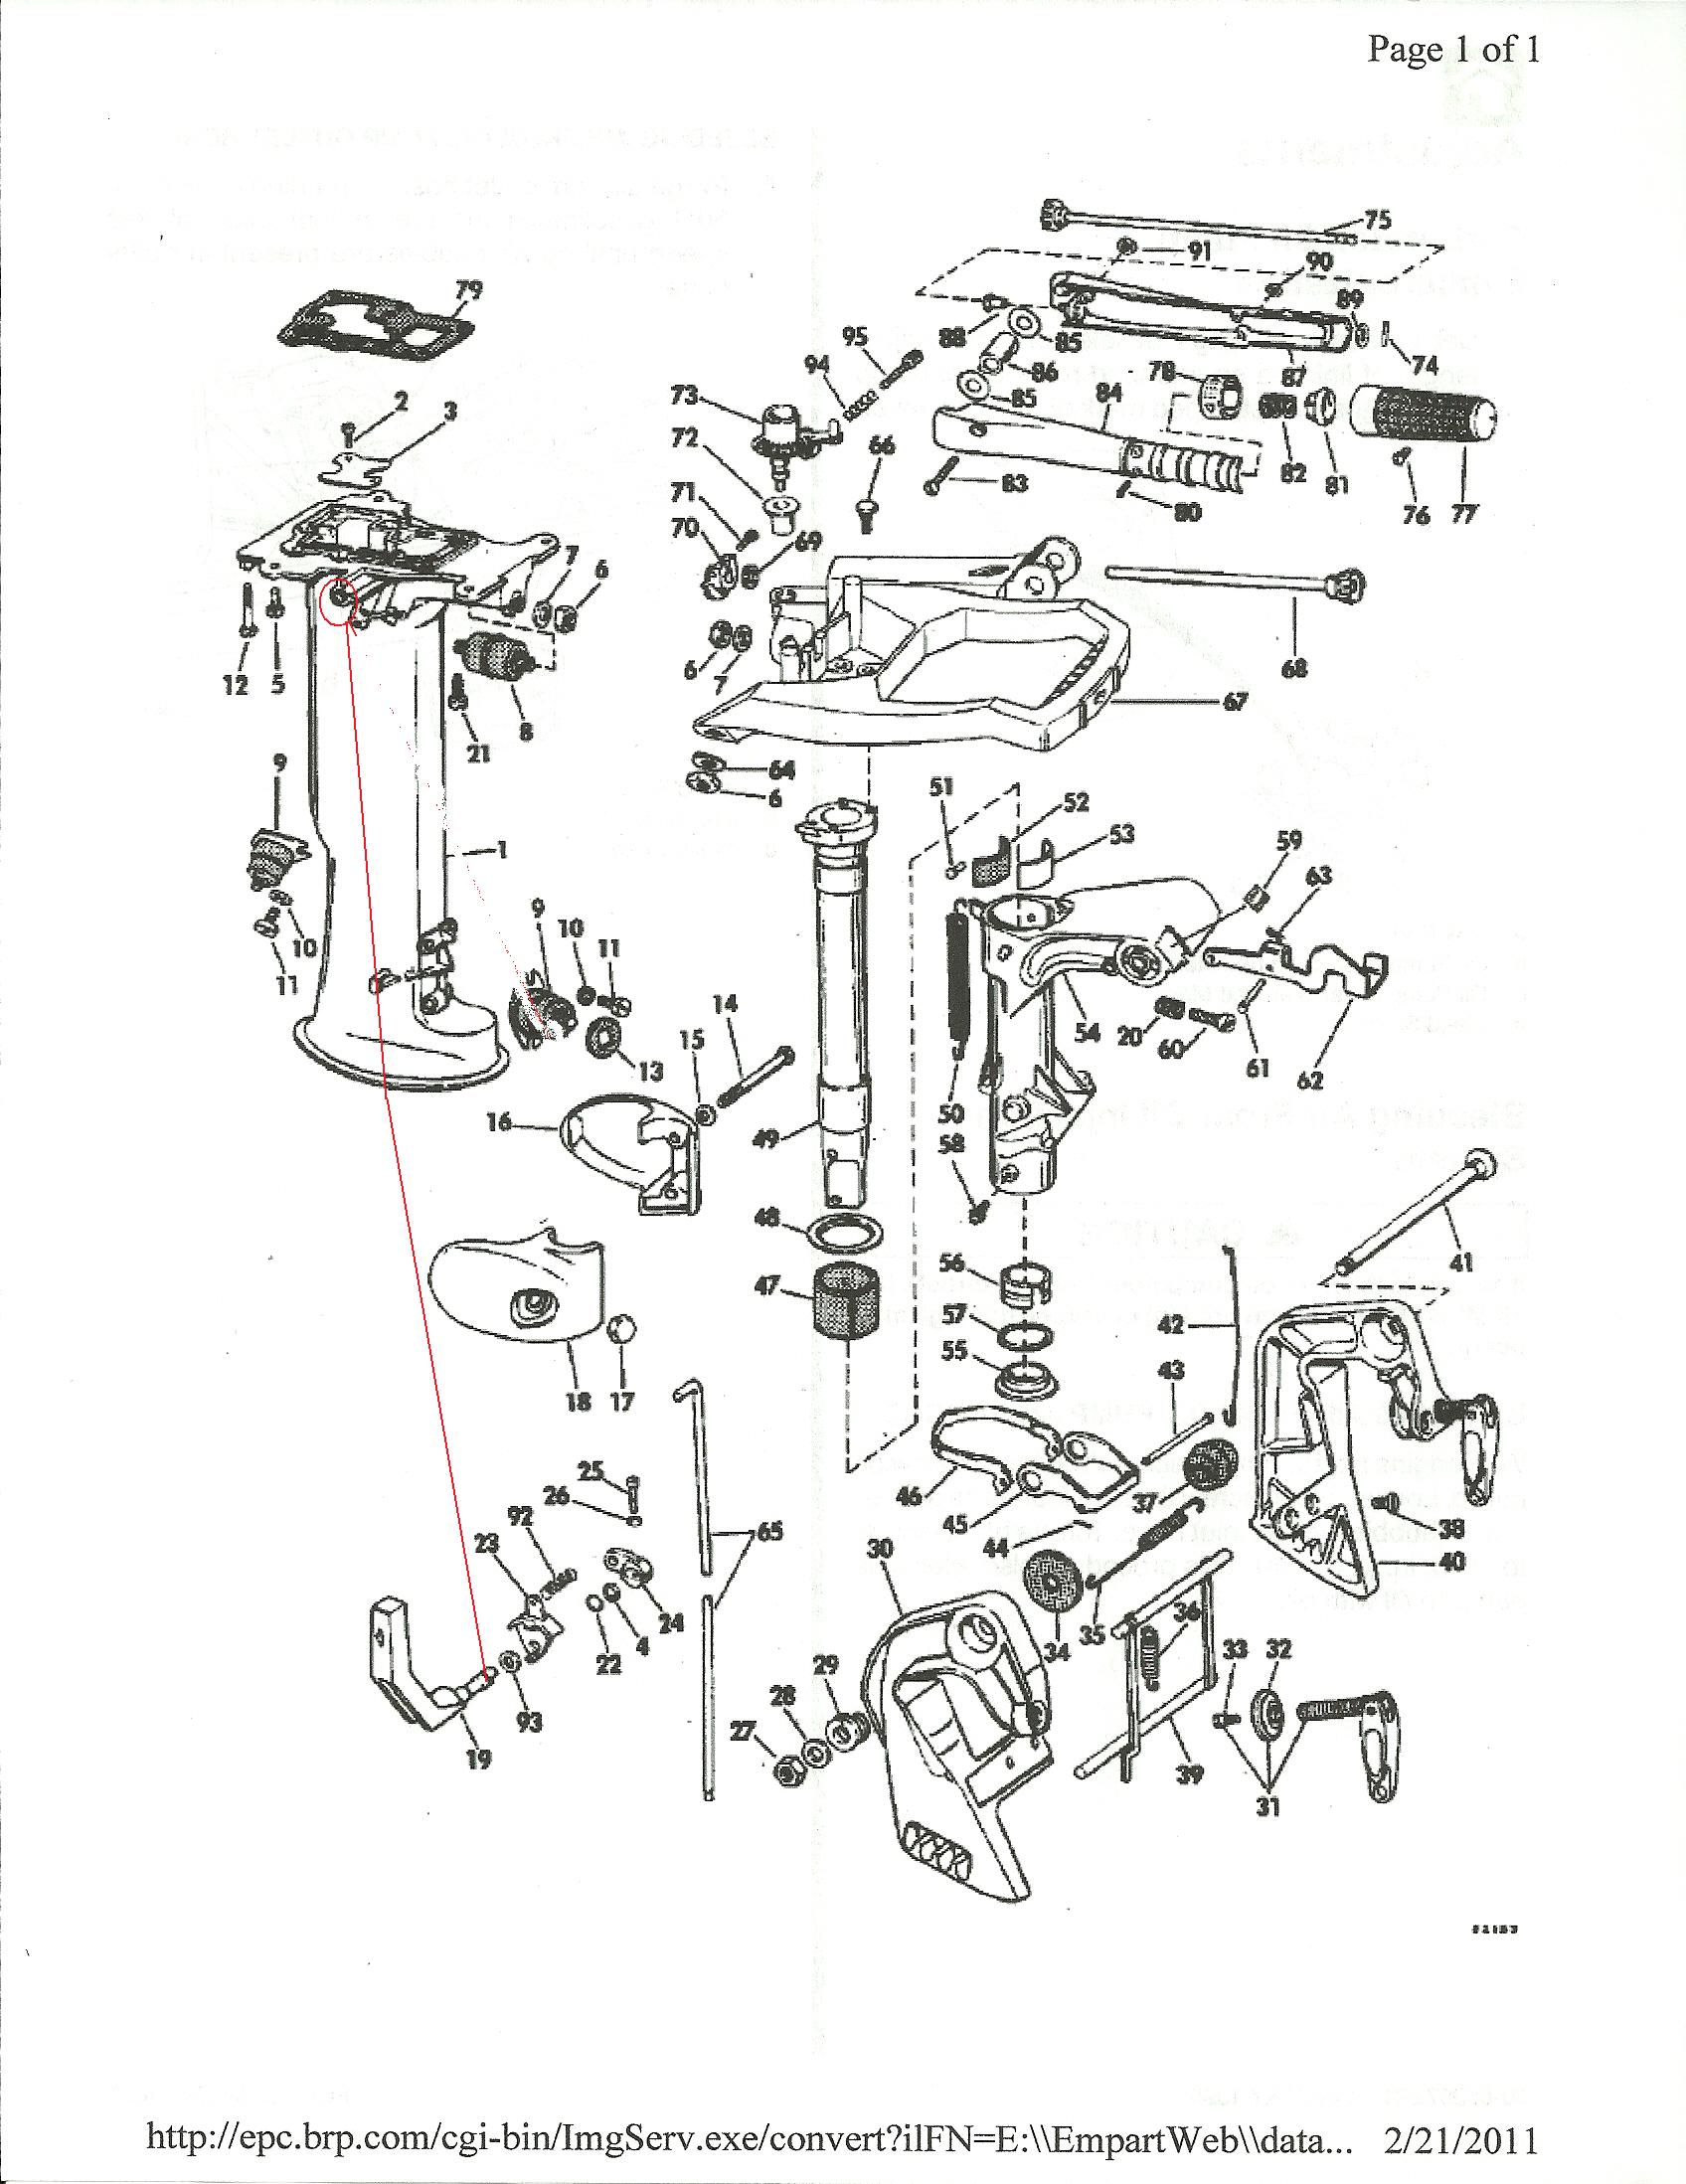 i have a 6hp and the gear selector is extremely difficult to operate rh justanswer com johnson 6 hp owners manual HP Computer Owners Manual